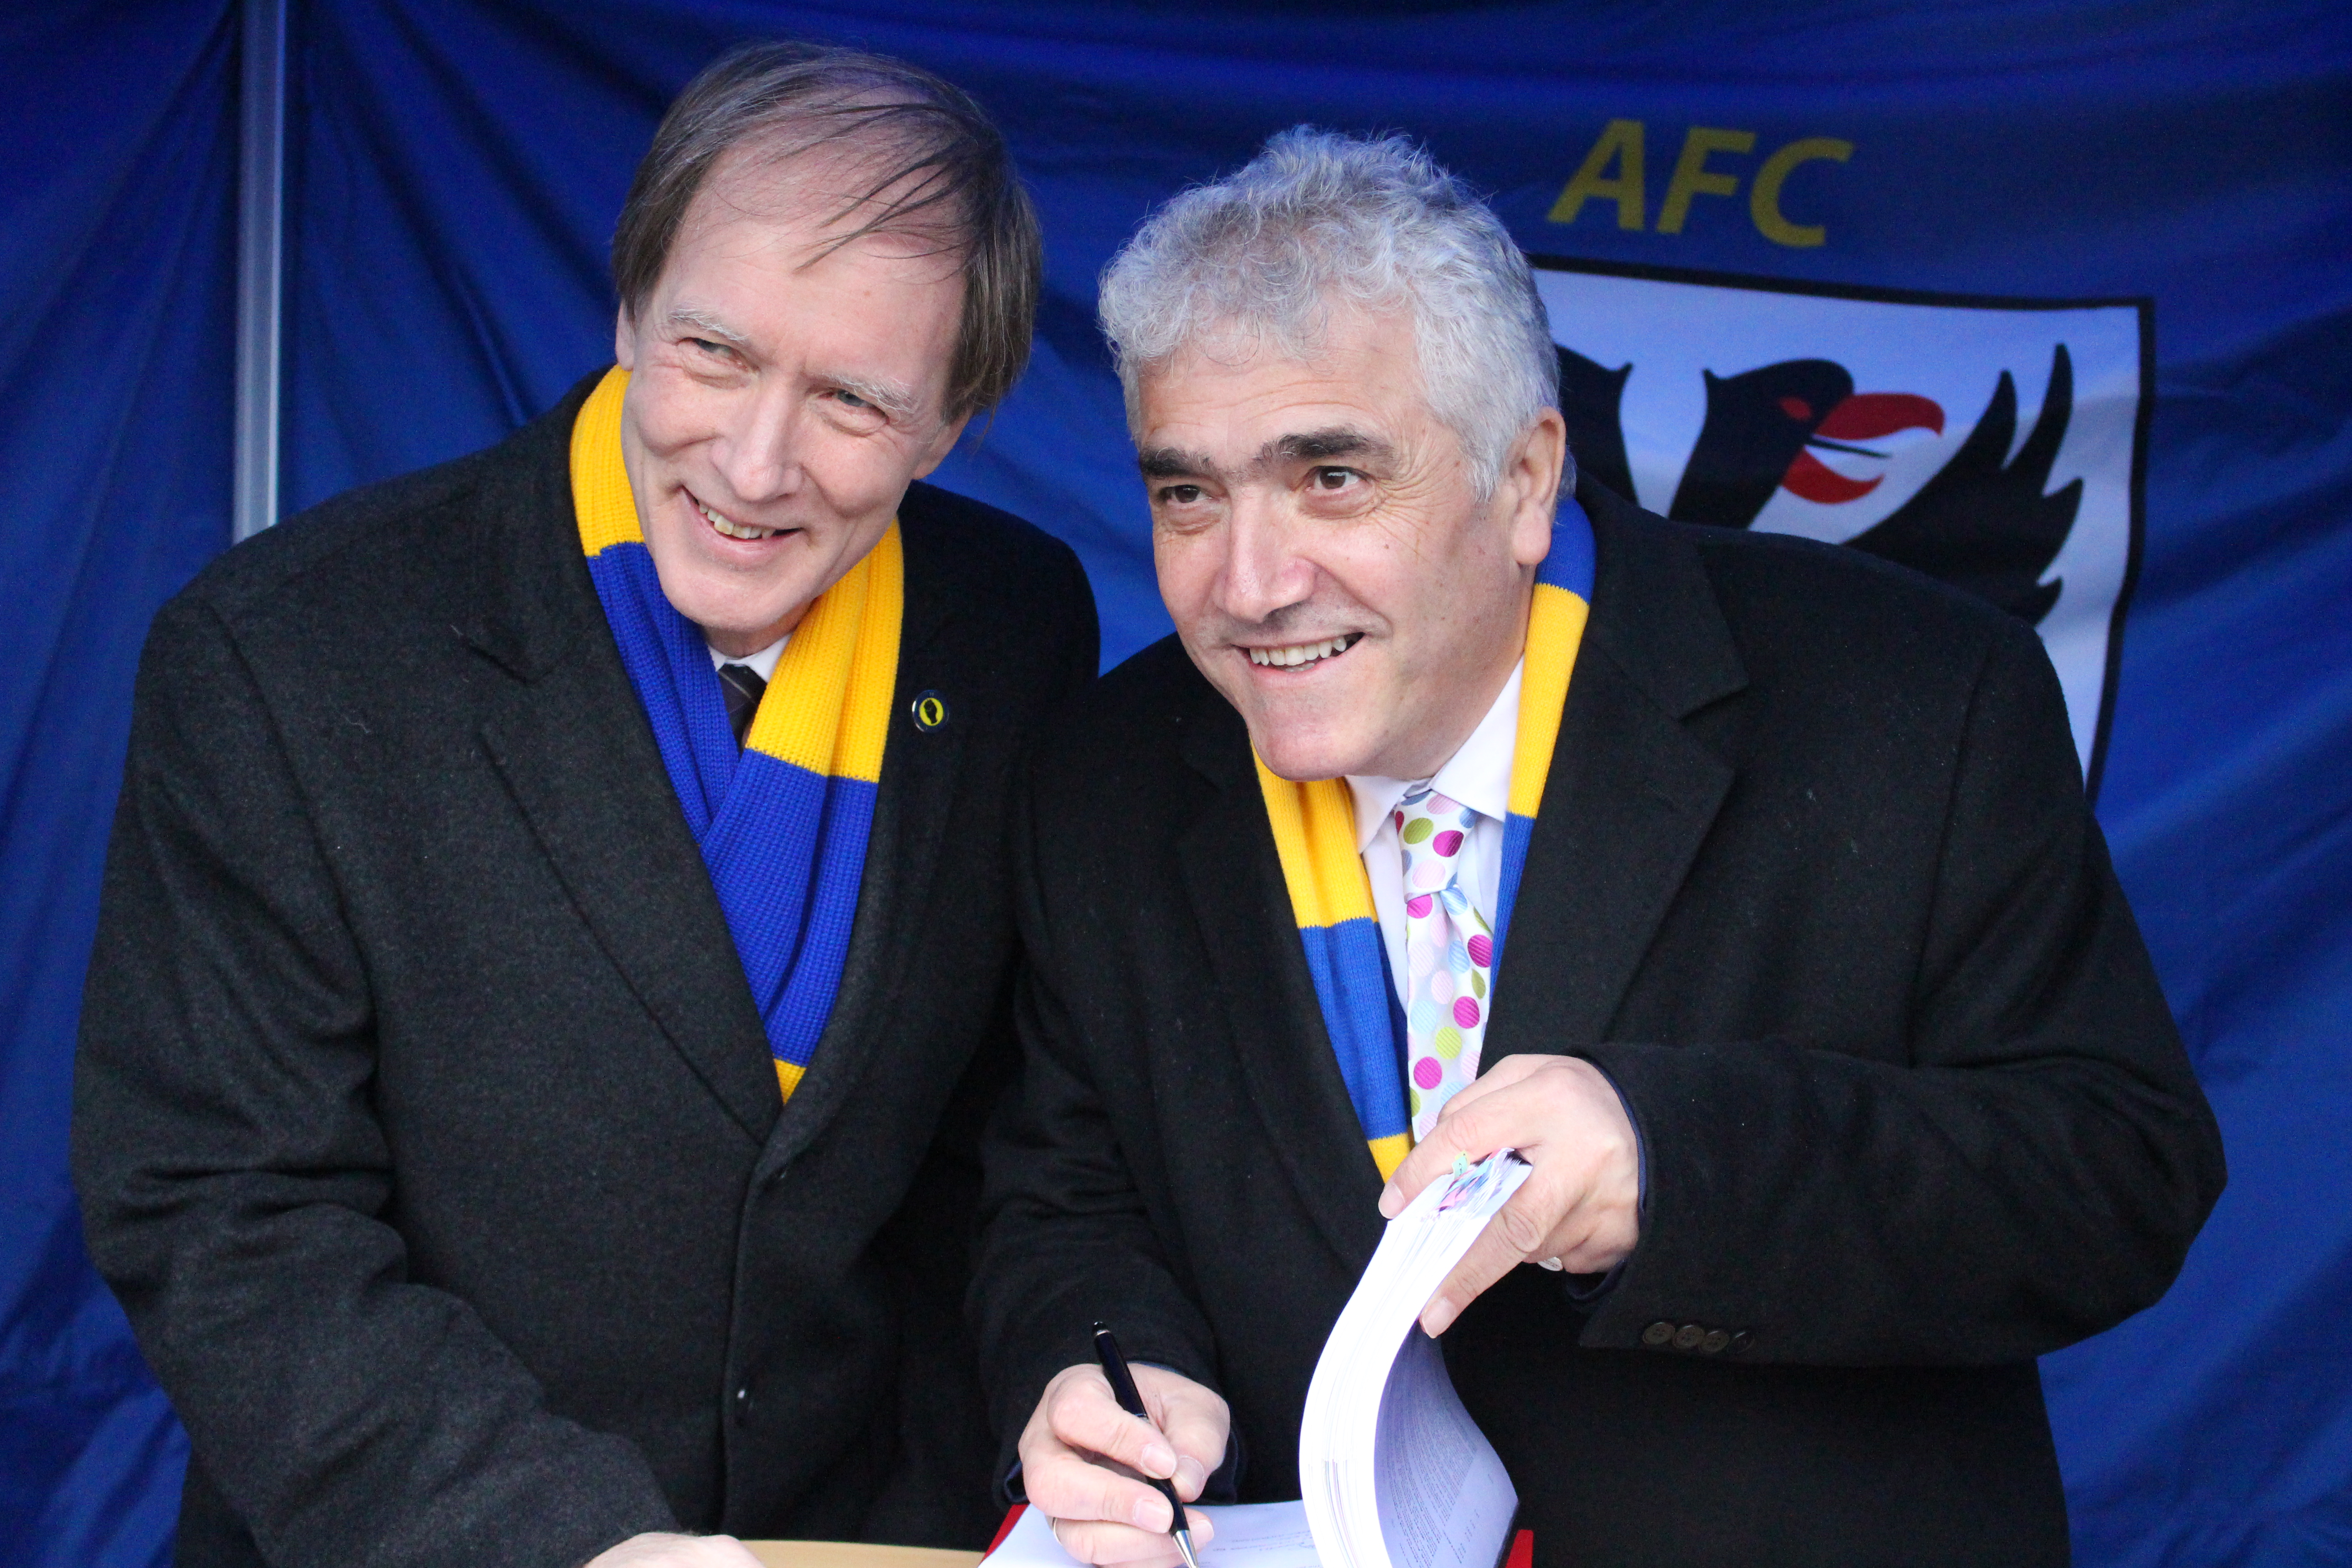 Dons will return home as work is set to start on new AFC Wimbledon ... f4320c5e0